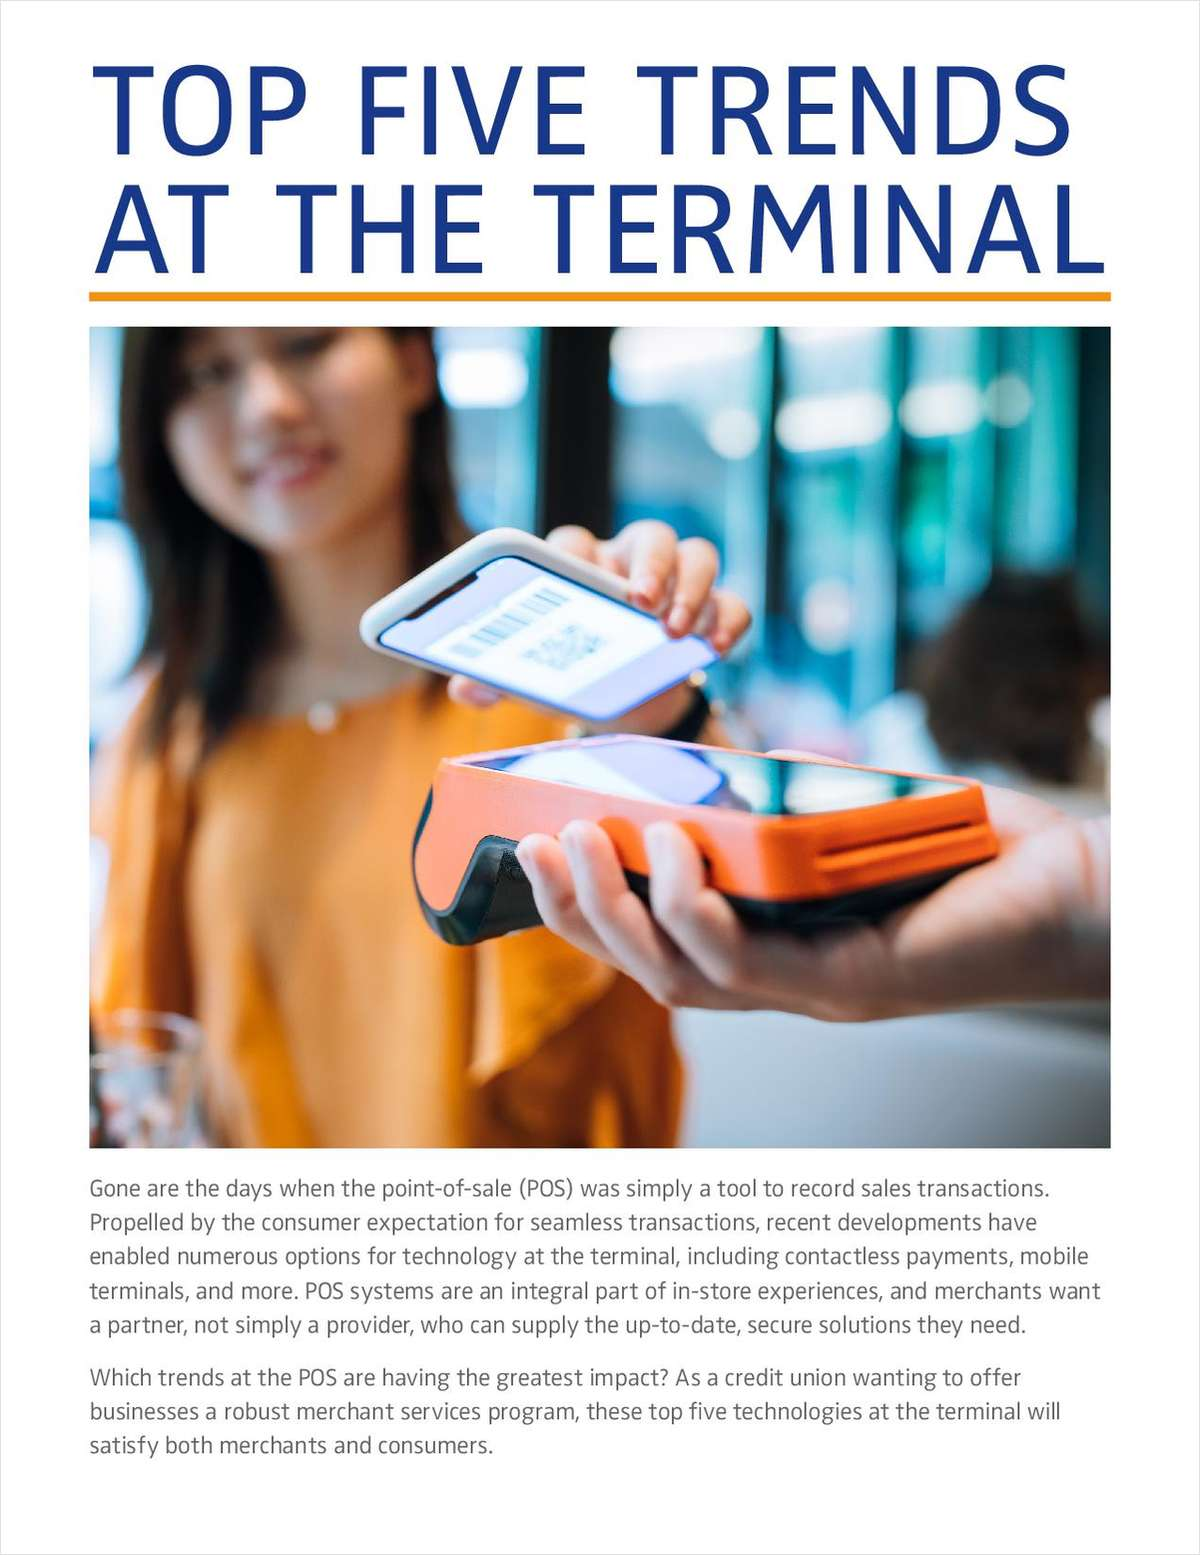 Top Five Trends at the Terminal